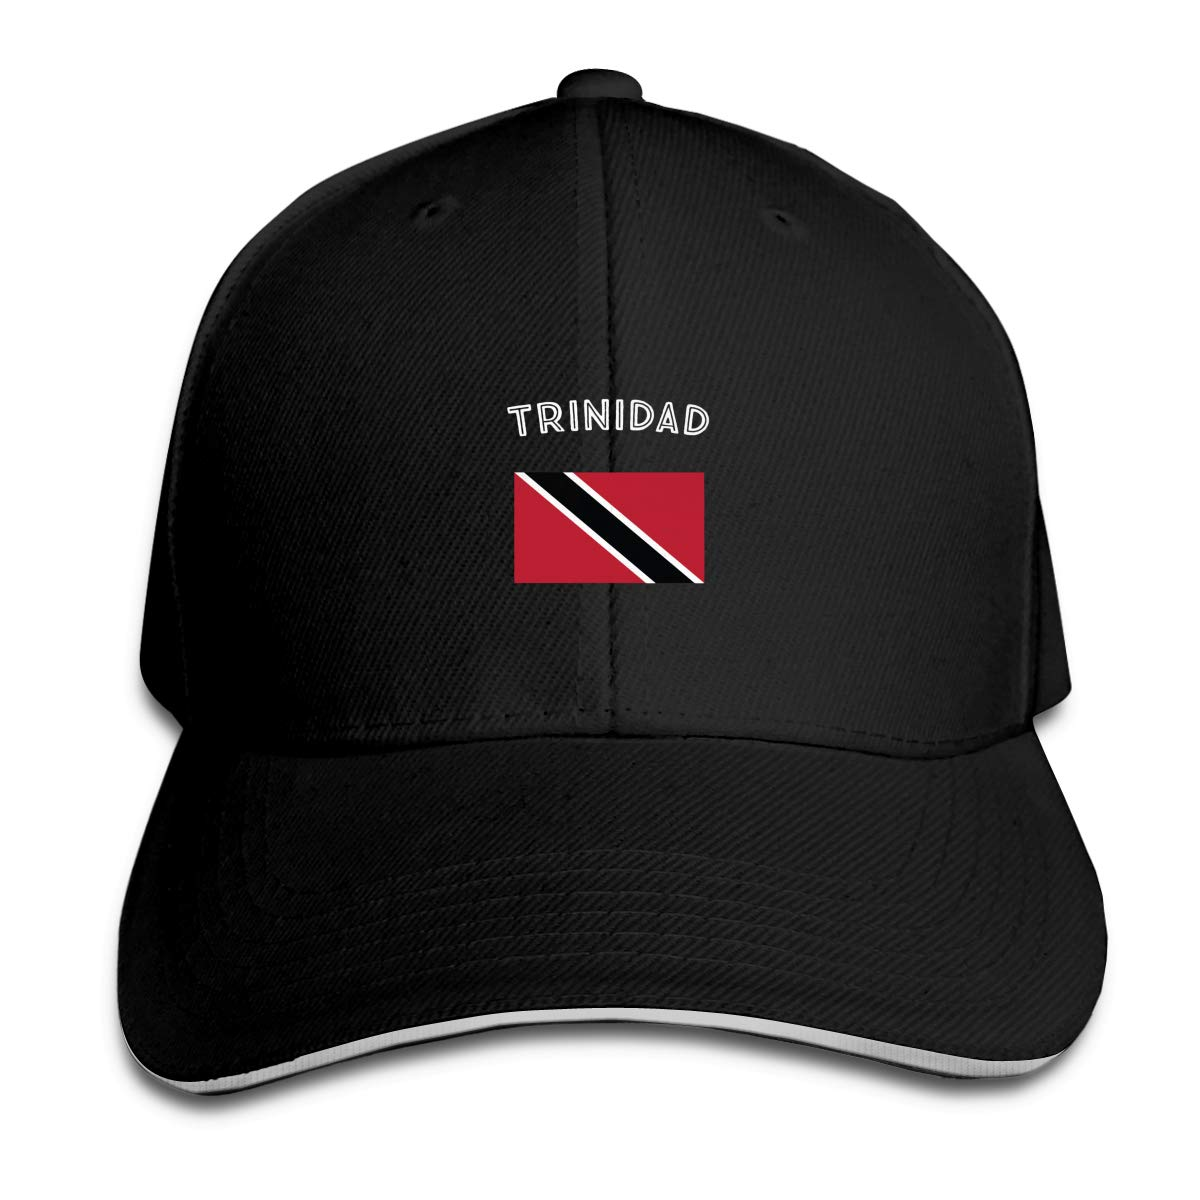 Trinidad Flag Classic Adjustable Cotton Baseball Caps Trucker Driver Hat Outdoor Cap Black